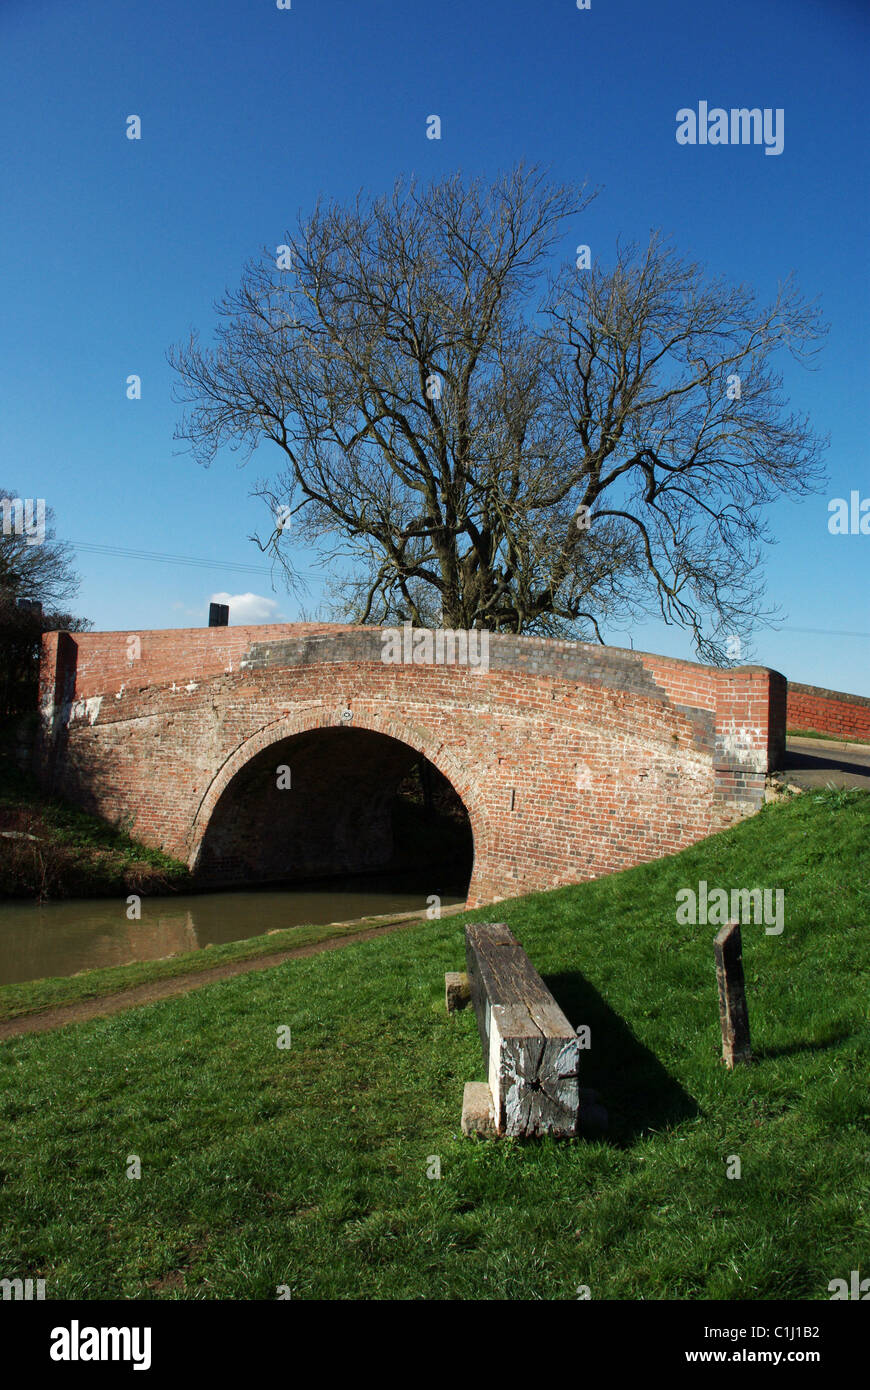 Candle Bridge which crosses the Grand Union canal at Blisworth, Northamptonshire, UK - Stock Image